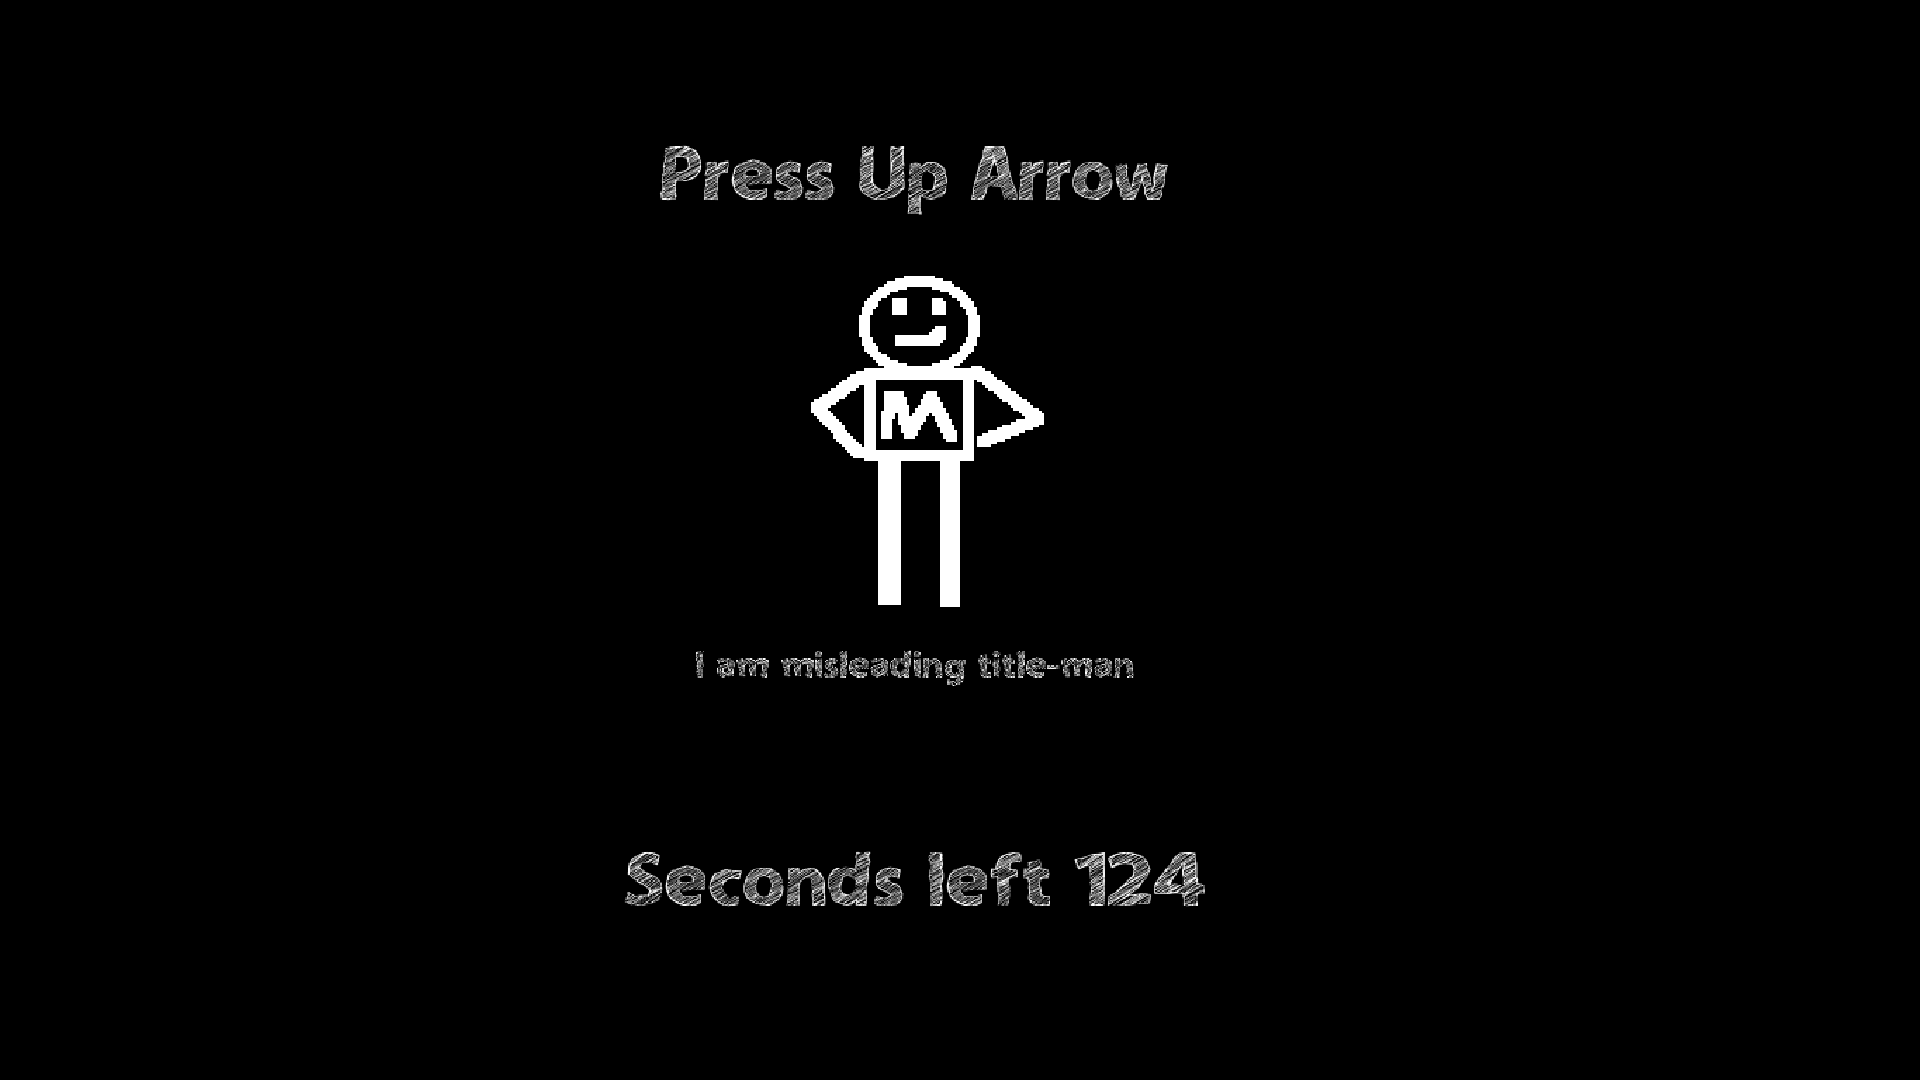 Misleading Title-Man by ulcius